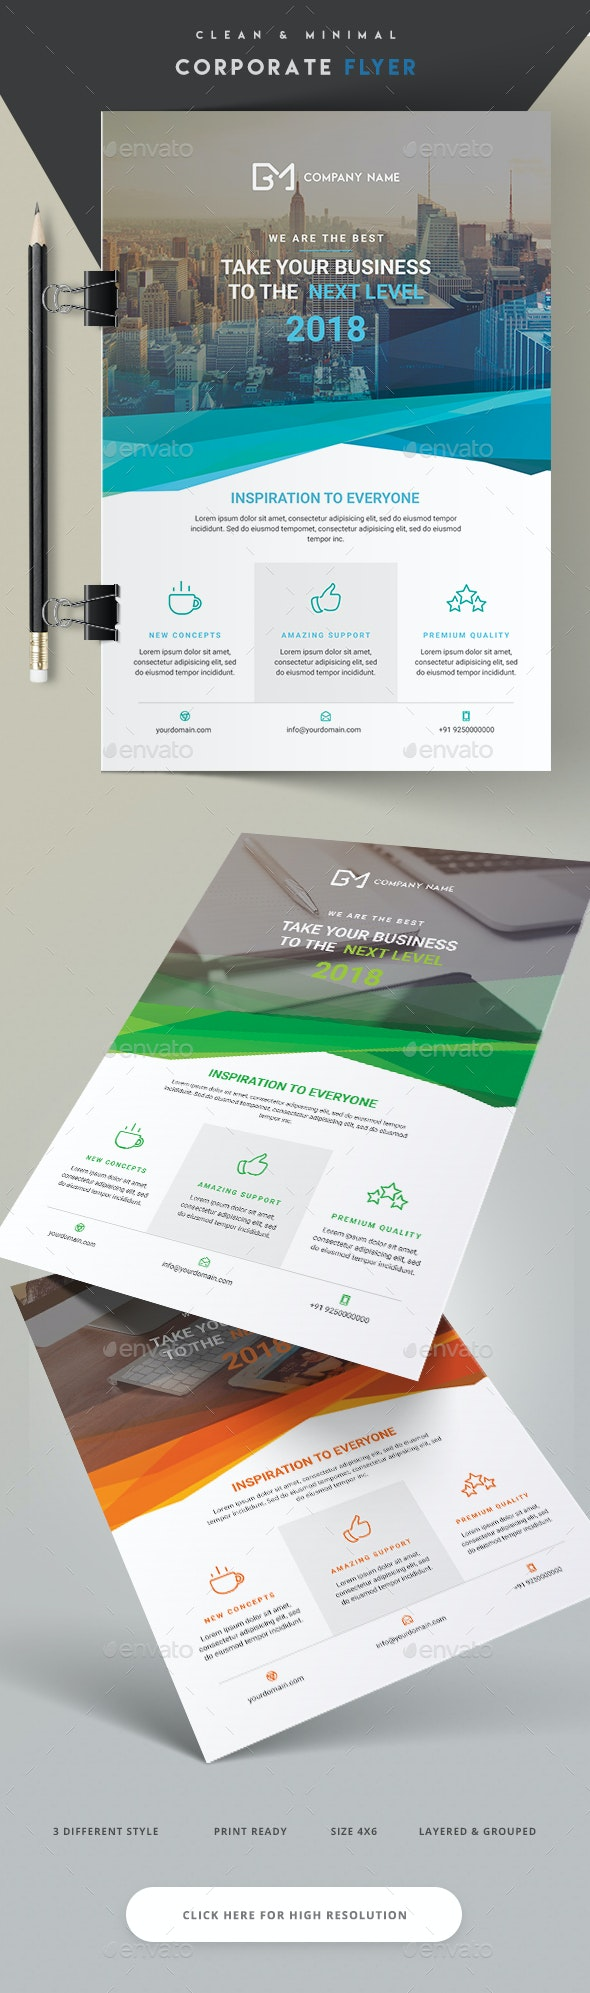 Clean and Minimal Corporate Flyer - Corporate Flyers